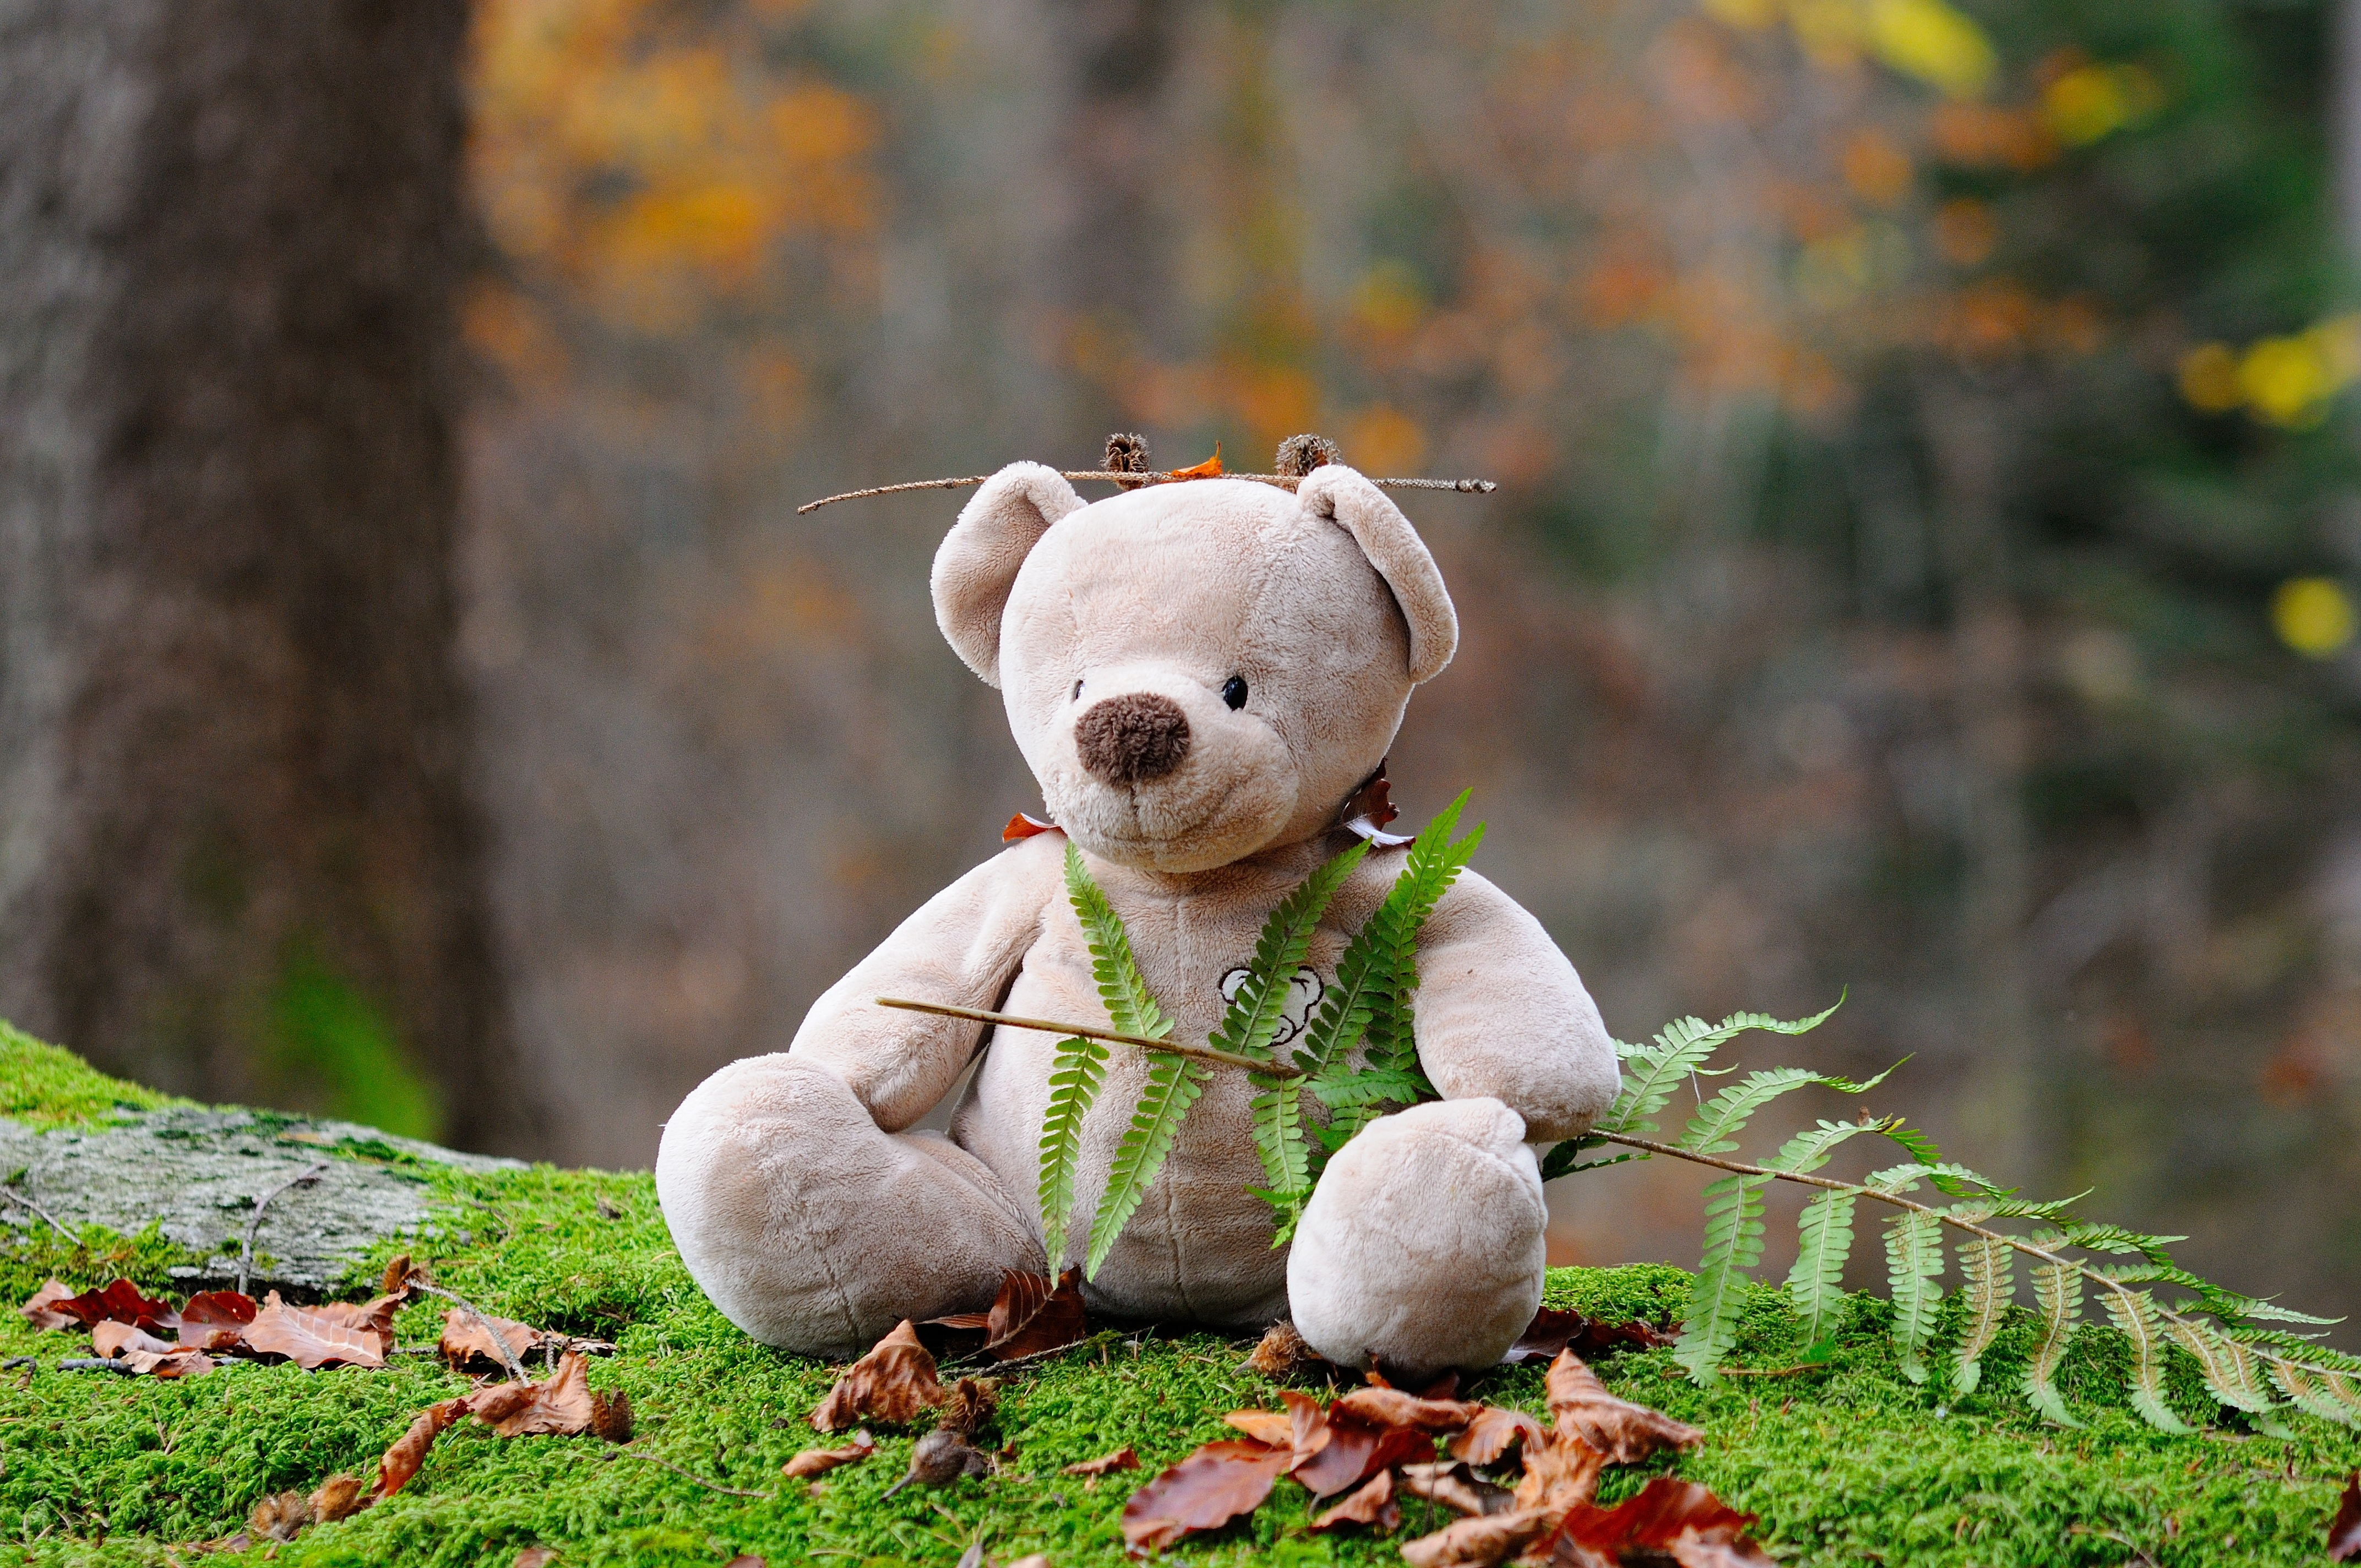 Forest Black And White Wallpaper Brown Teddy Bear On Brown Wooden Bench Outside 183 Free